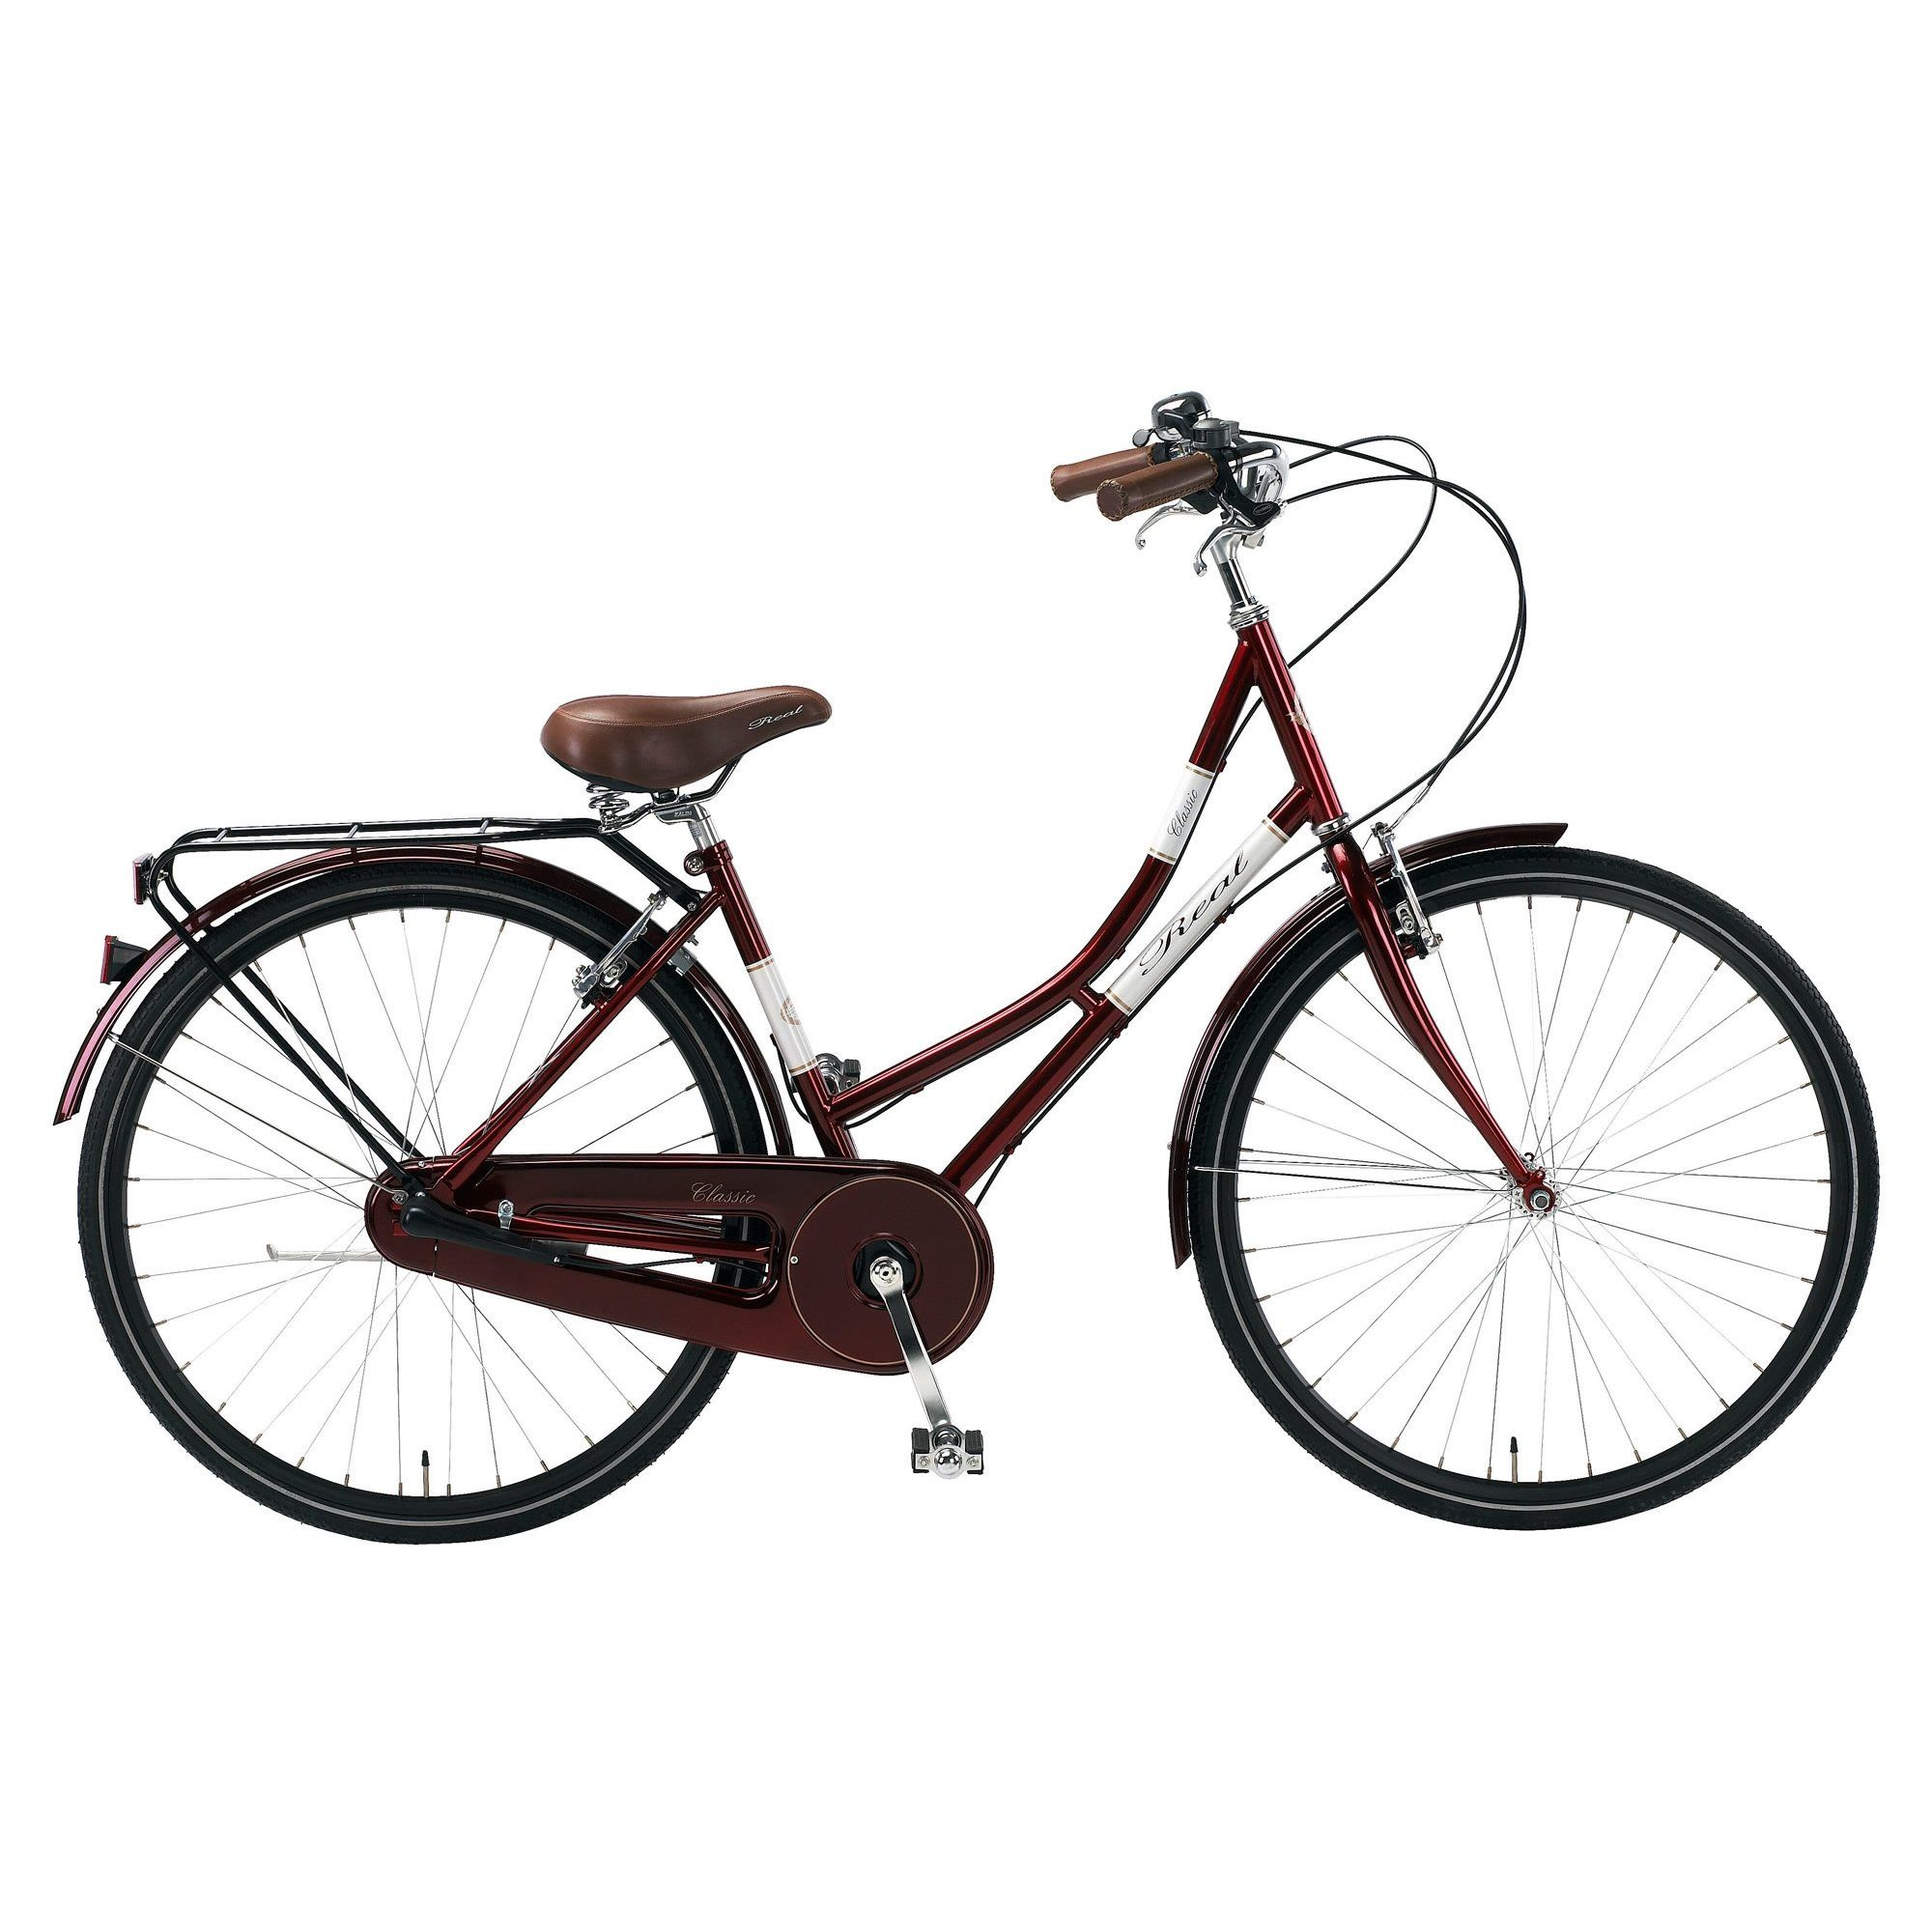 Real Classic Ladies Bicycle 17 In 2020 Bicycle Classic Bikes Bicycle Women